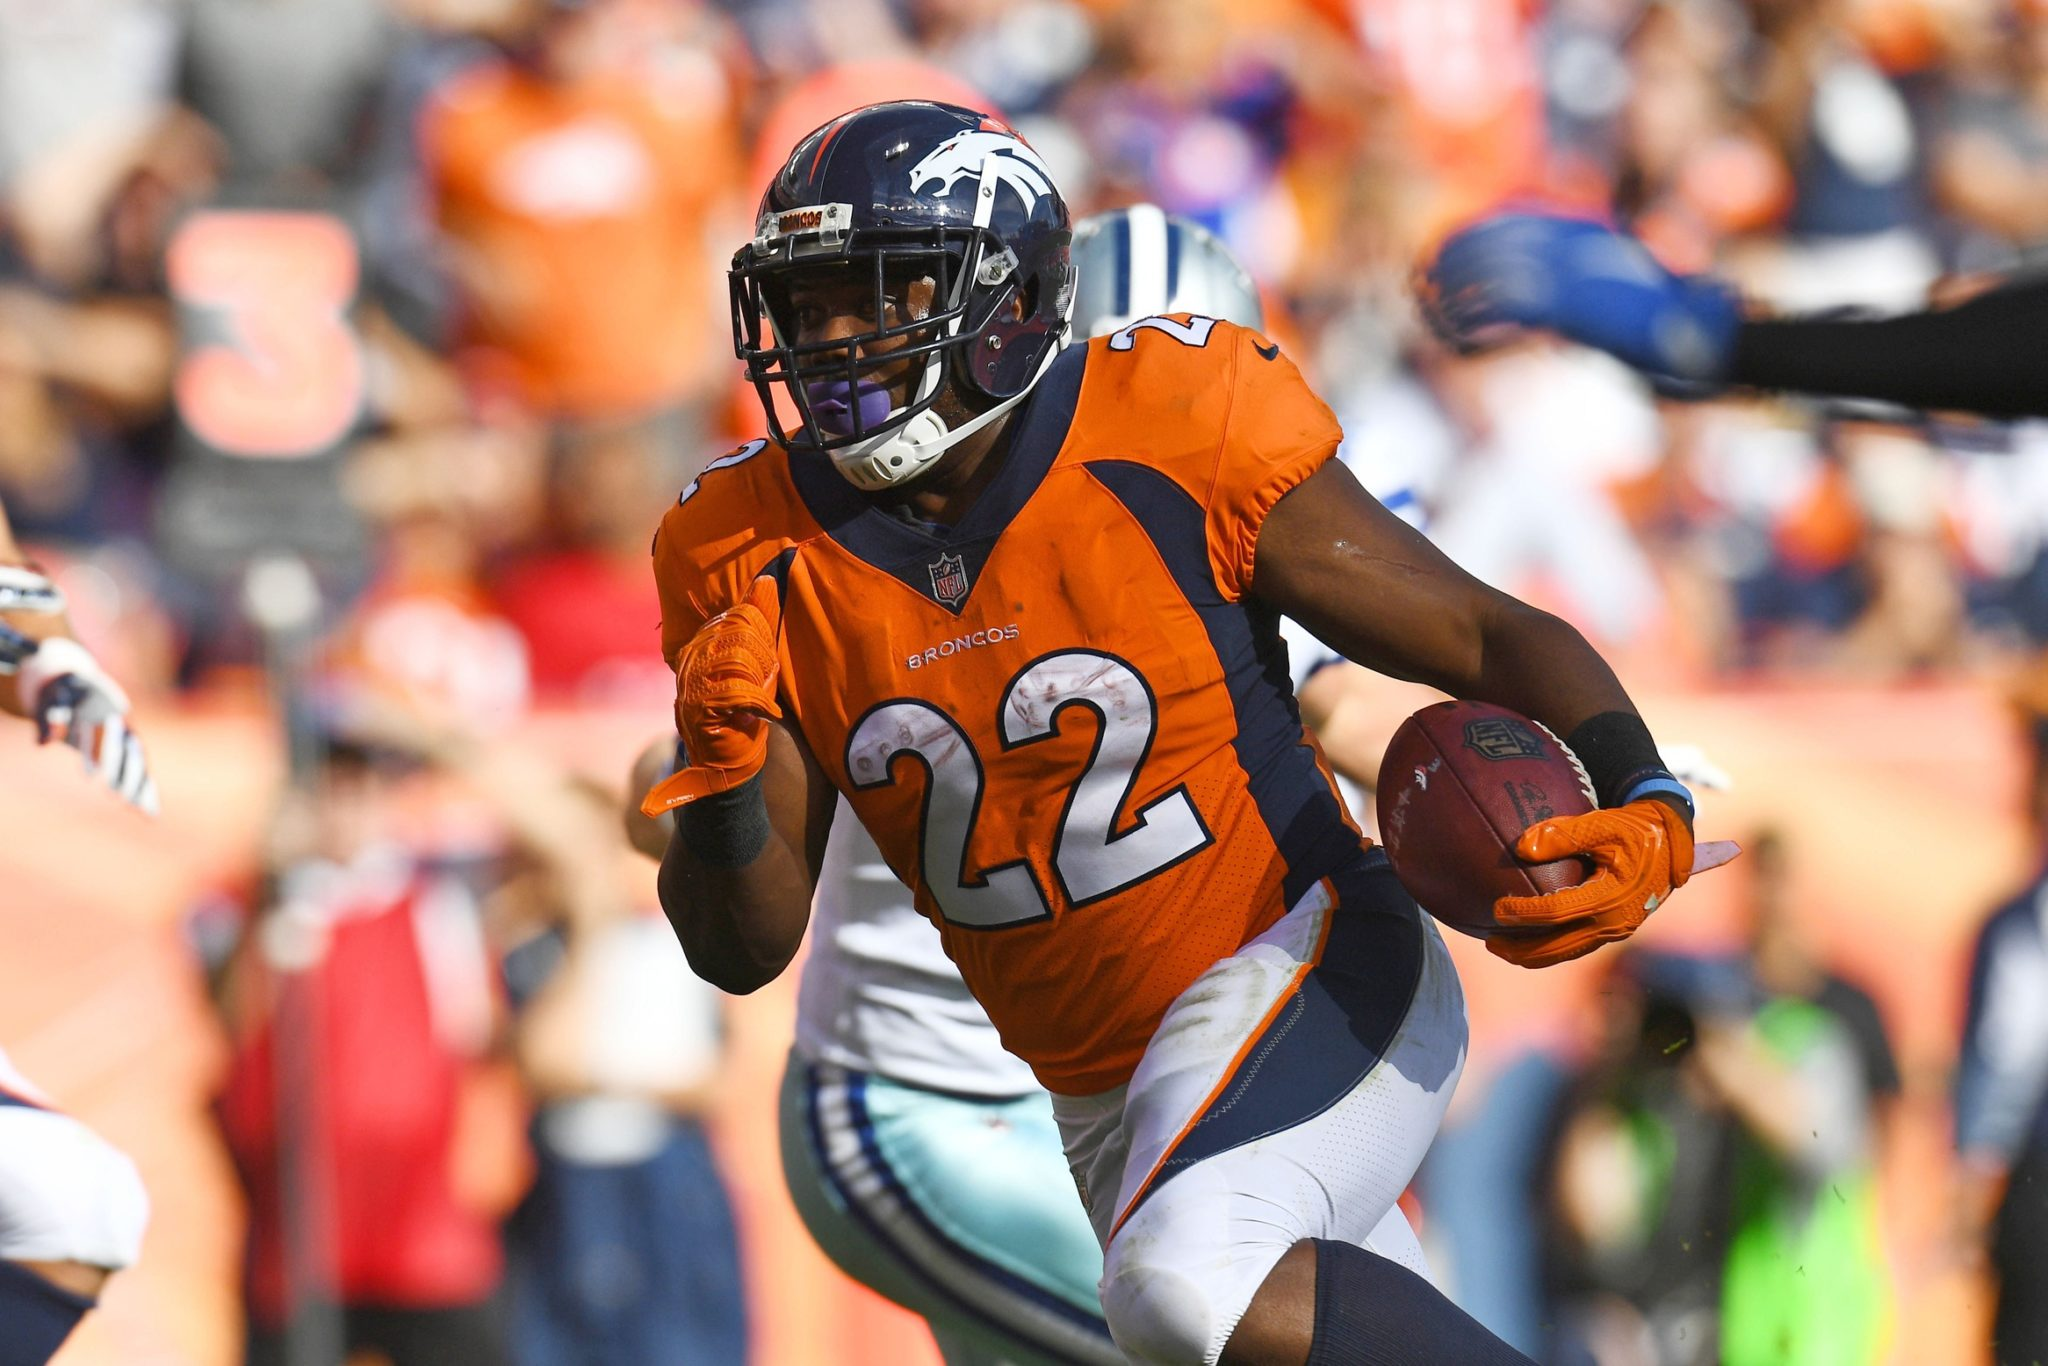 Eight Teams Have Expressed Interest In Free Agent RB C.J. Anderson https://t.co/YpBJfelKOw https://t.co/G30w5AcQMl